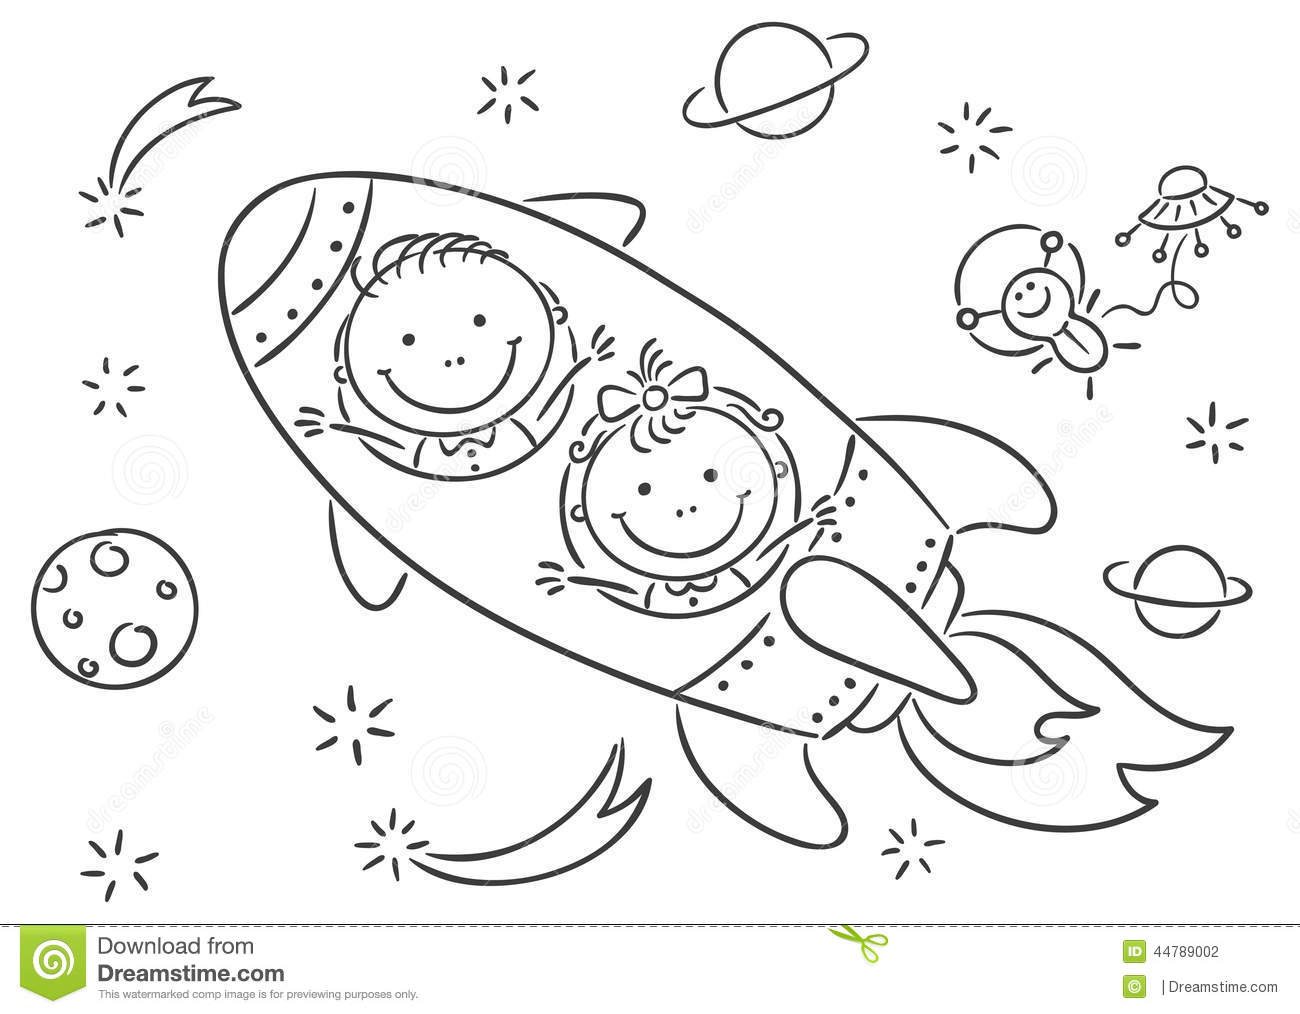 1300x1014 Space Drawing For Kids Children Drawing Space Planet Rocket Stock